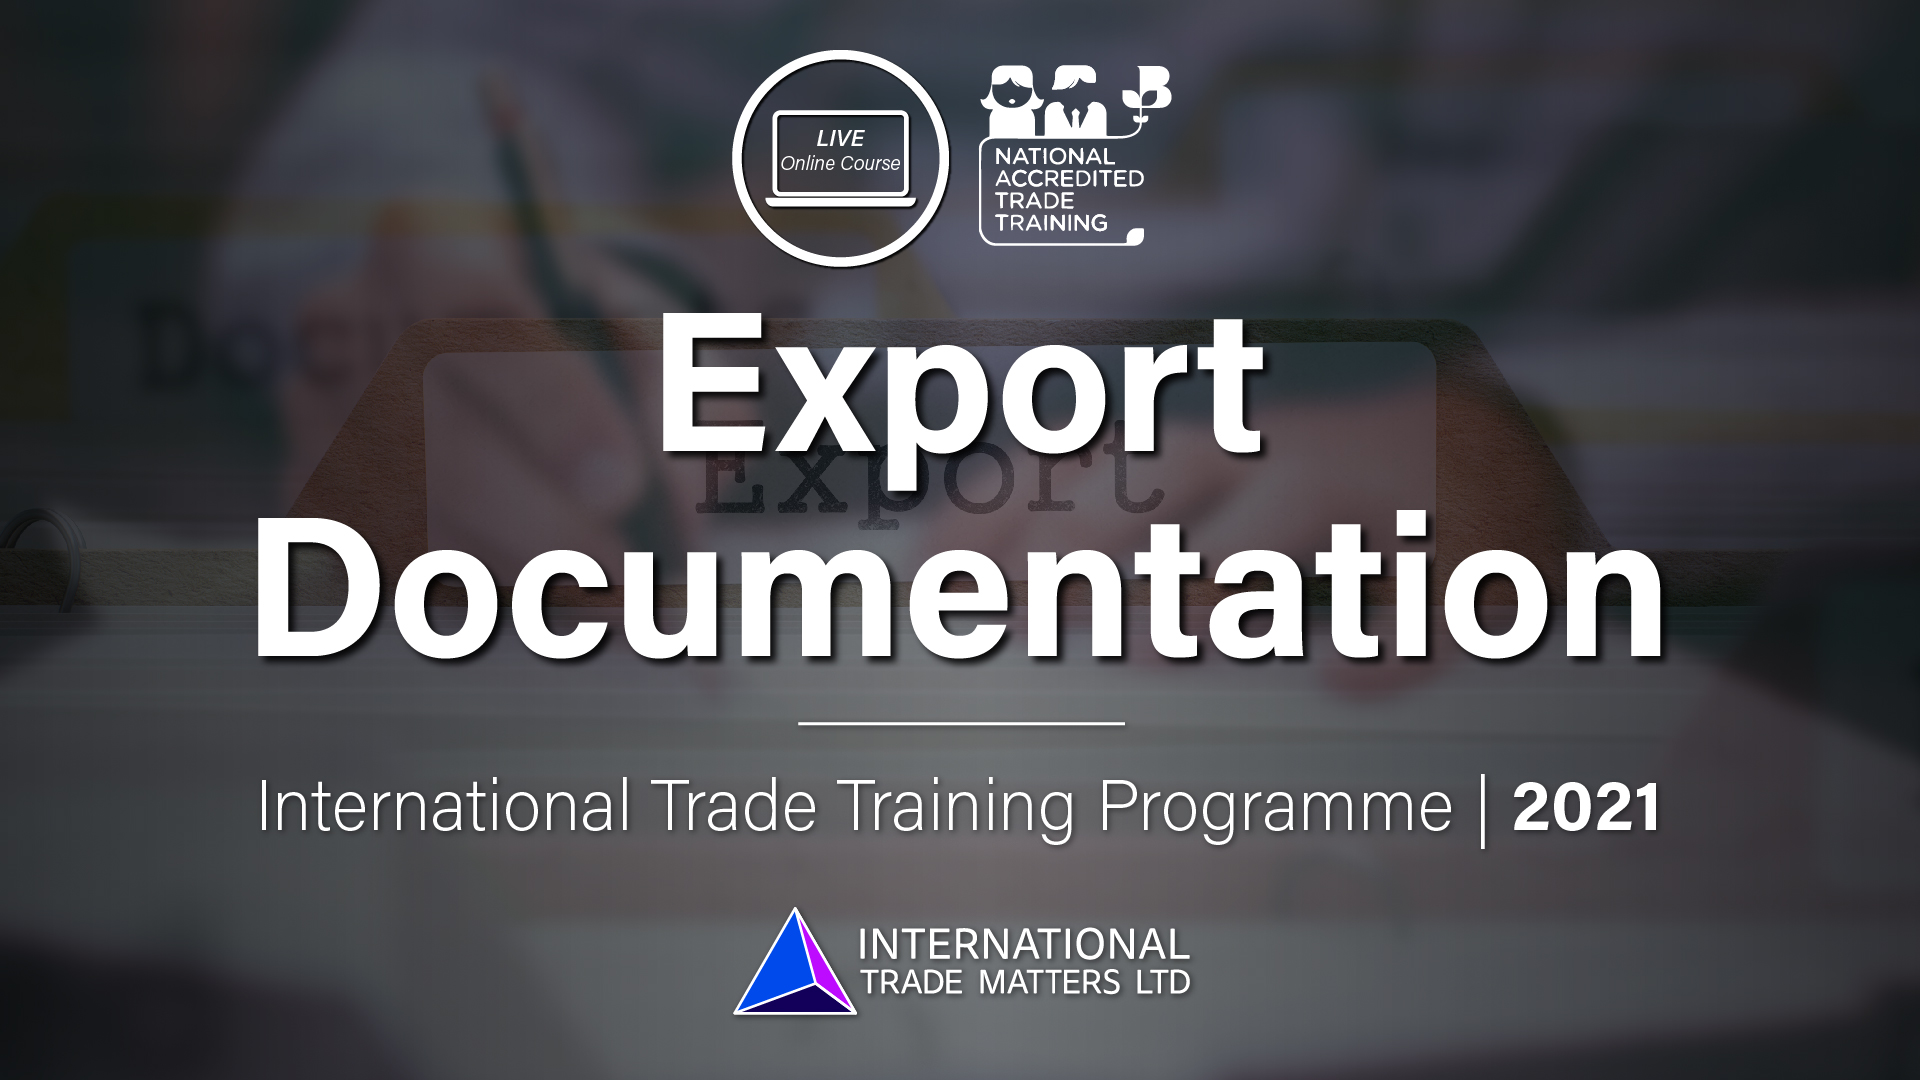 Export Documentation – An Online Course